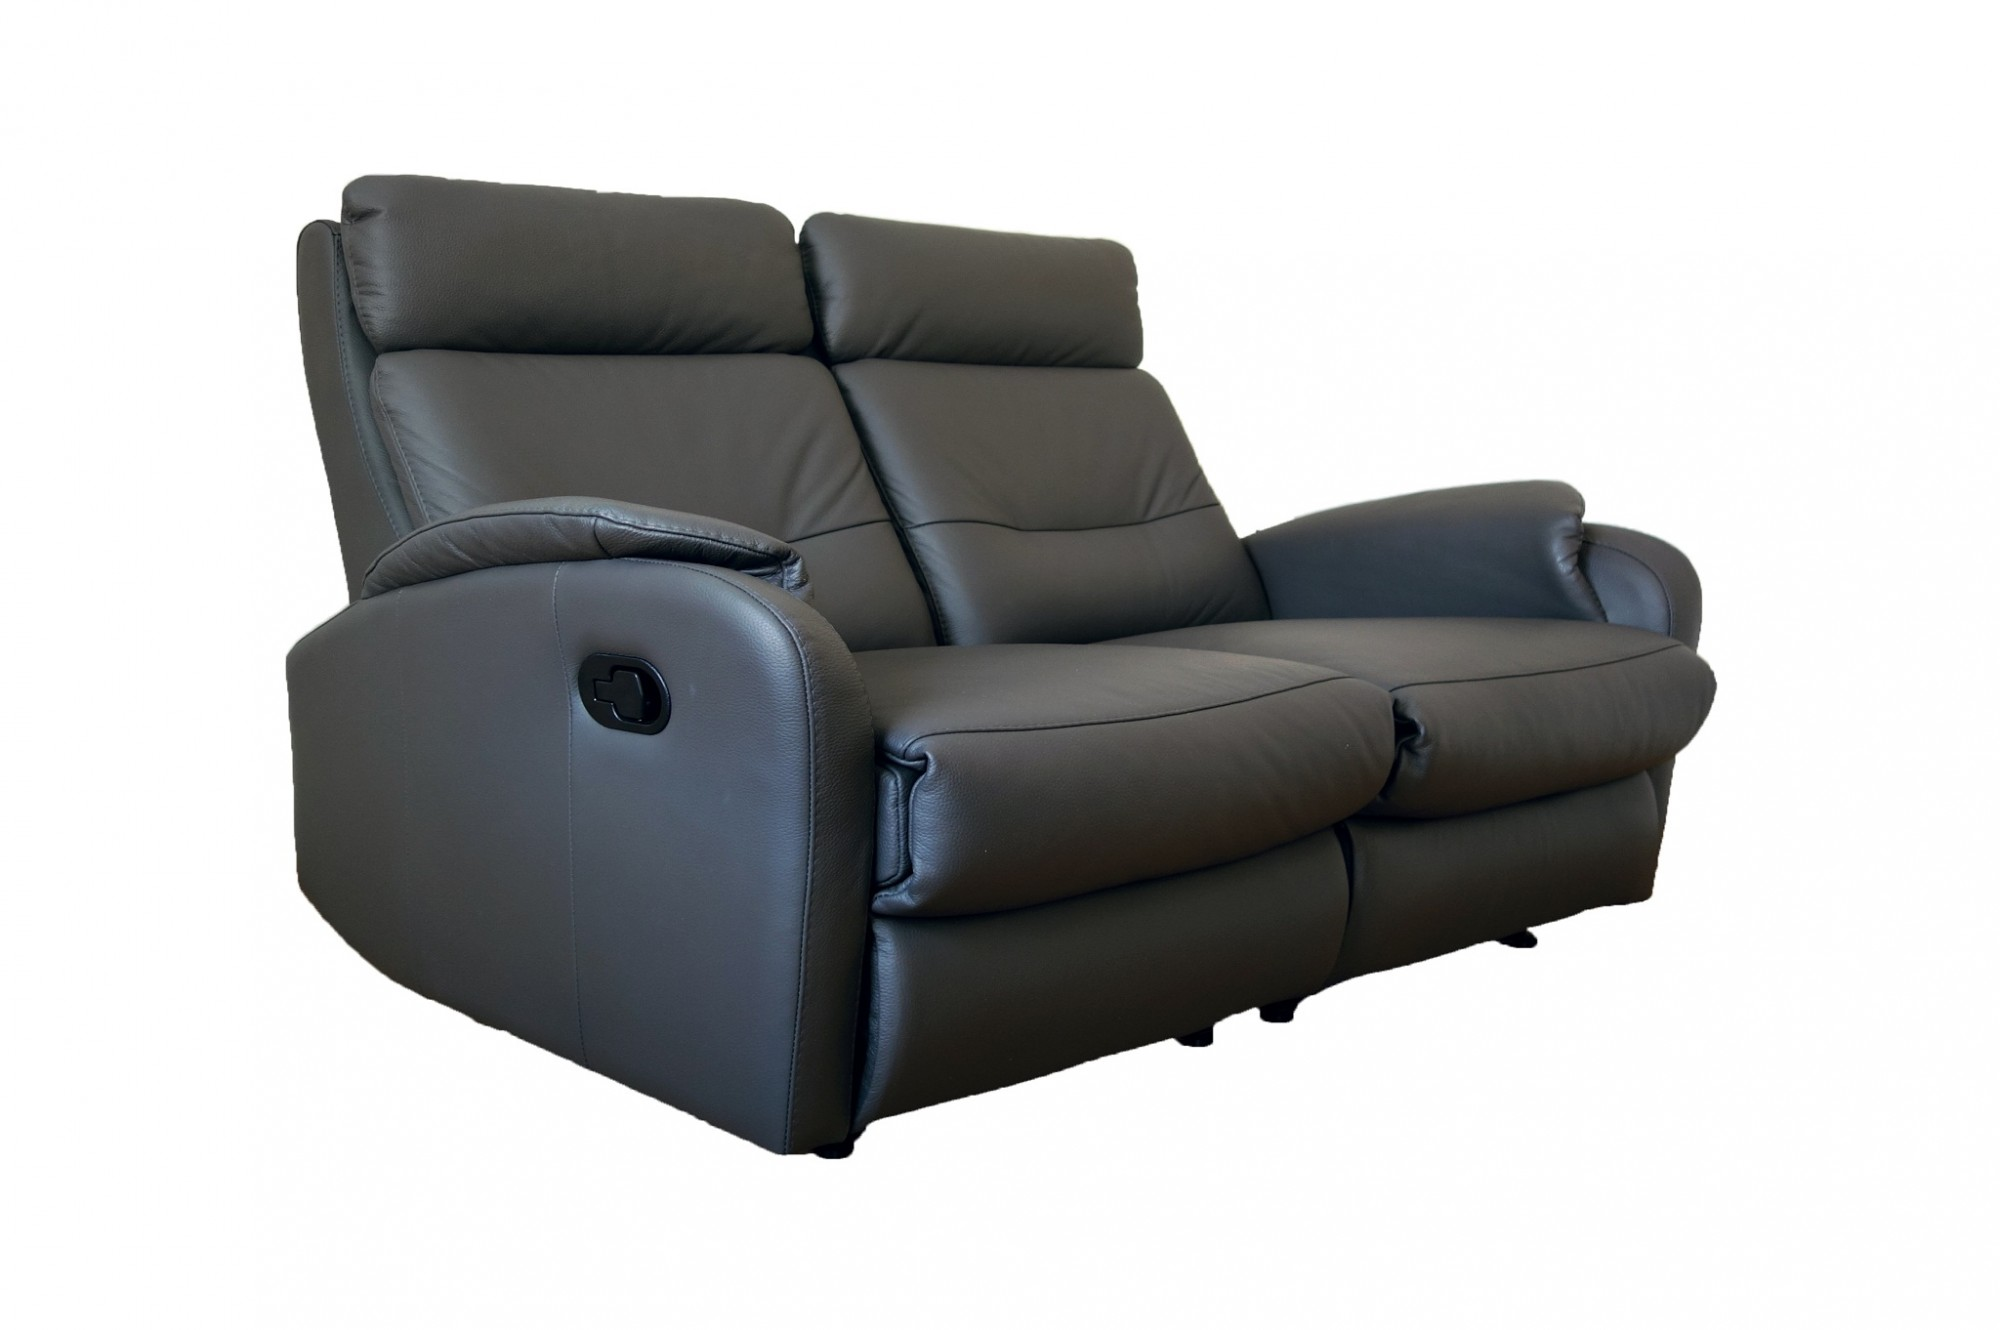 Caro leather reclining 2 seater sofa